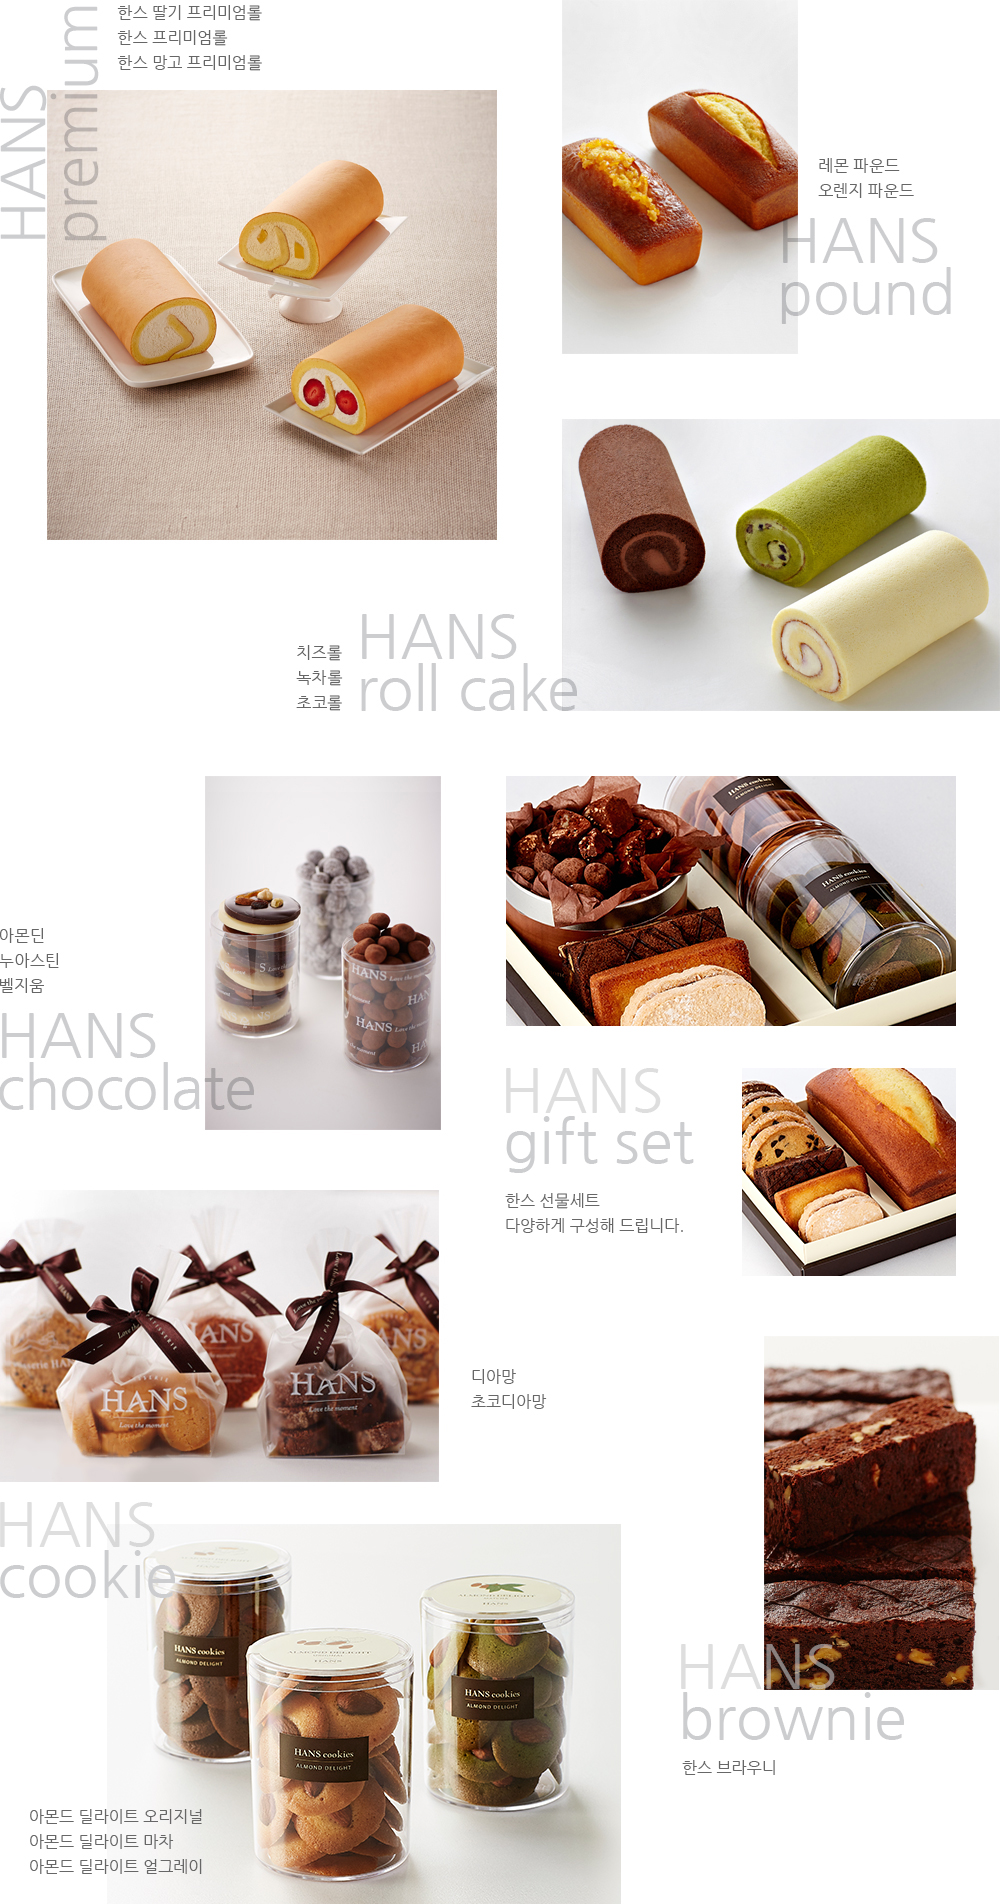 HANS premium, HANS pound, HANS roll cake, HANS chocolate, HANS gift set, HANS cookie, HANS brownie